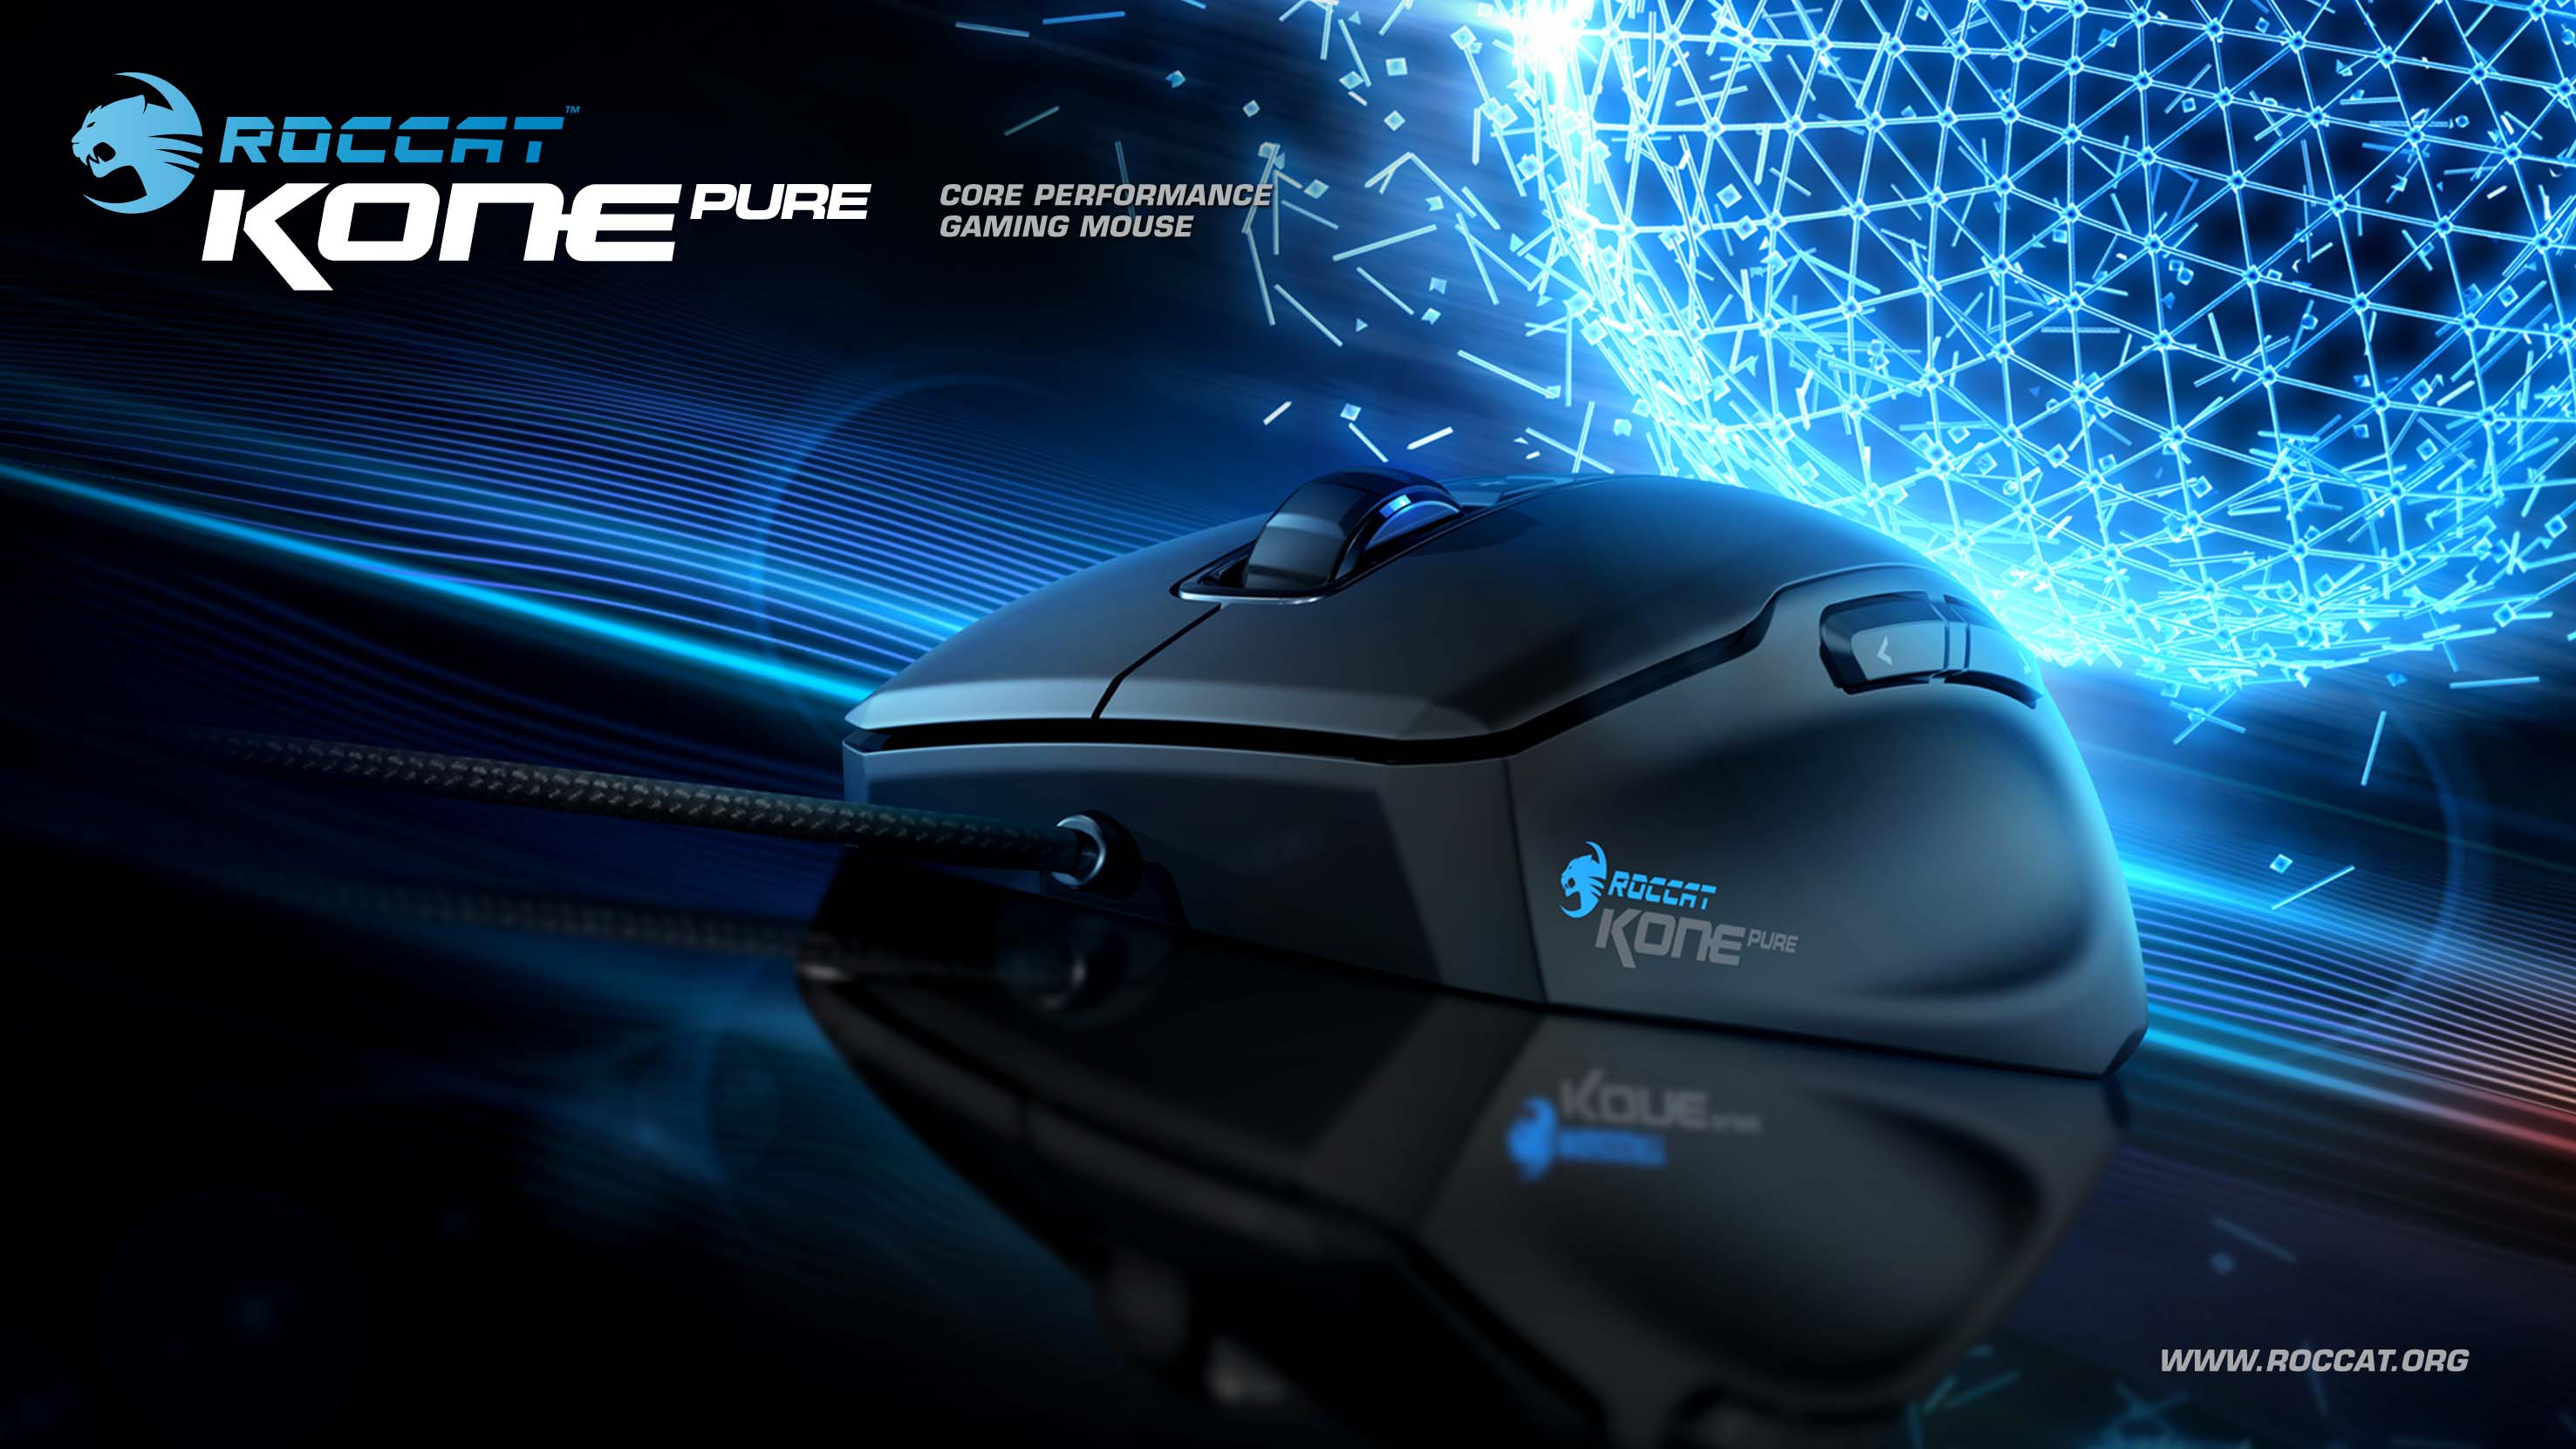 Roccat Kone Pure Gaming Mouse Product Review post image